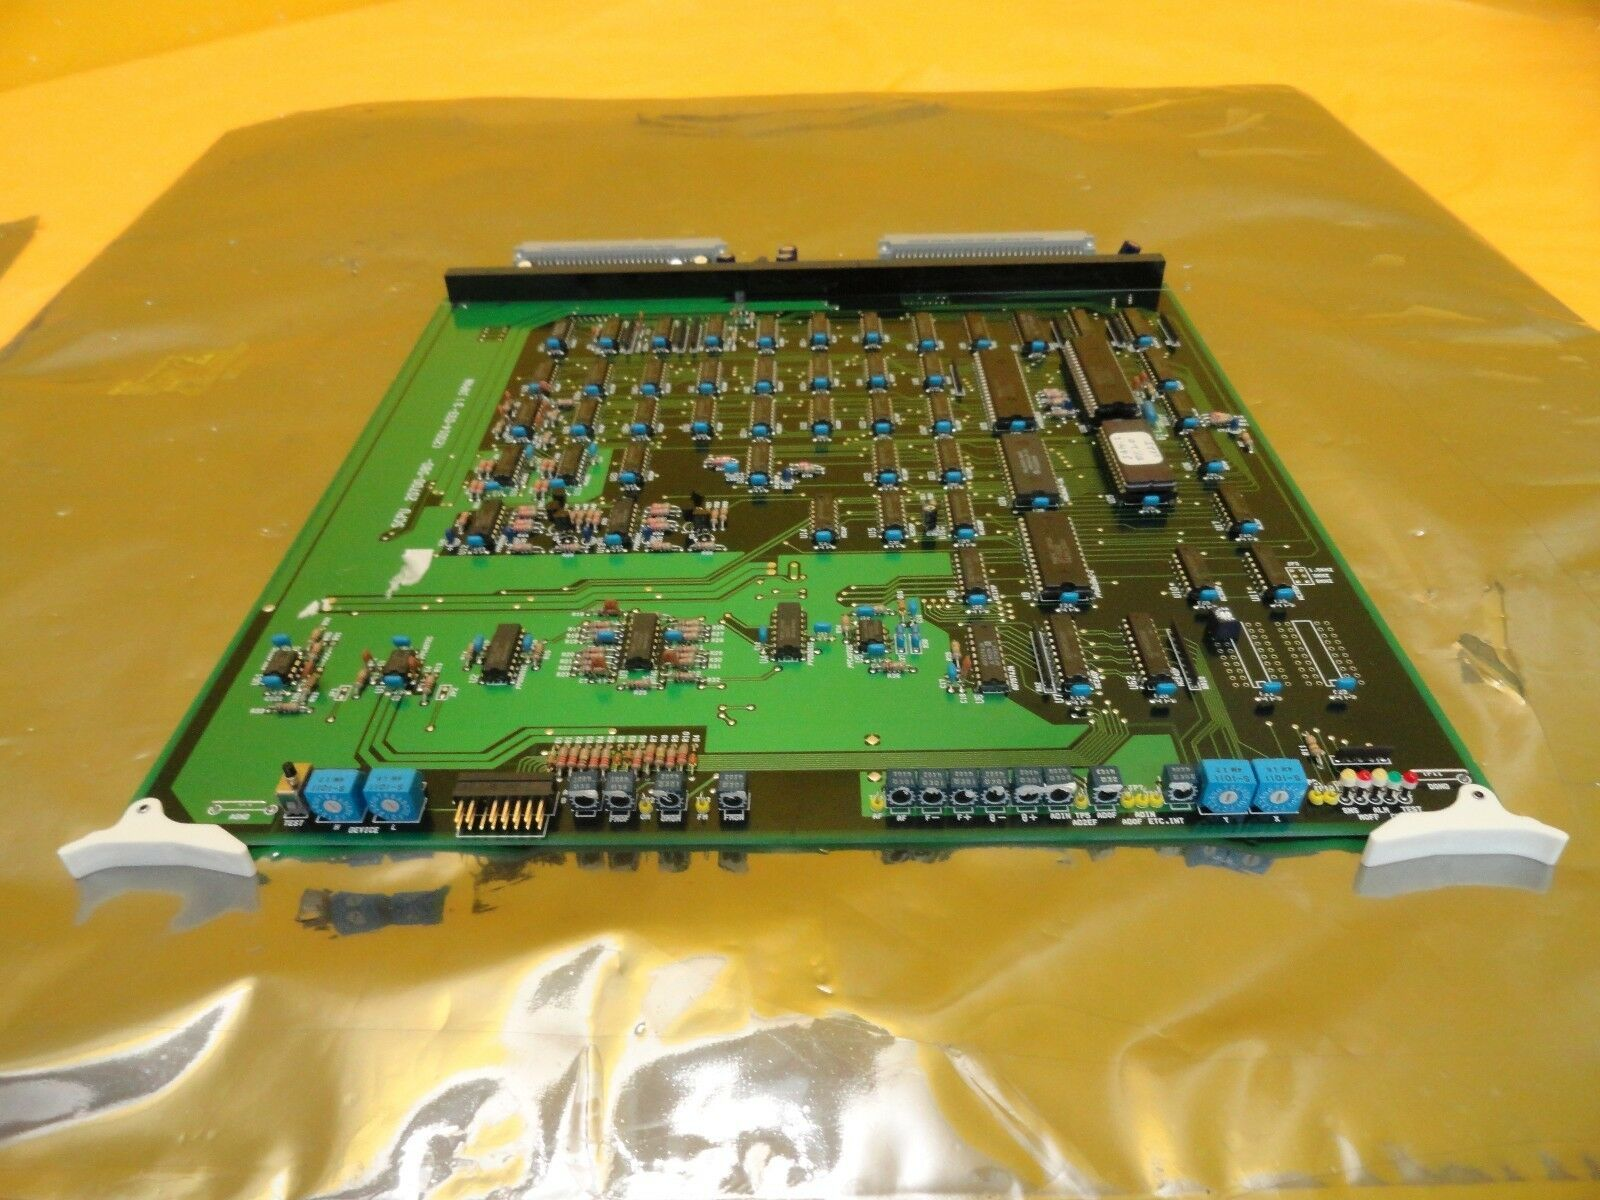 Nikon 2S700-580 SCPU Board PCB Card 2S014-033-3 V1.20 OPTISTATION 3 Used Working